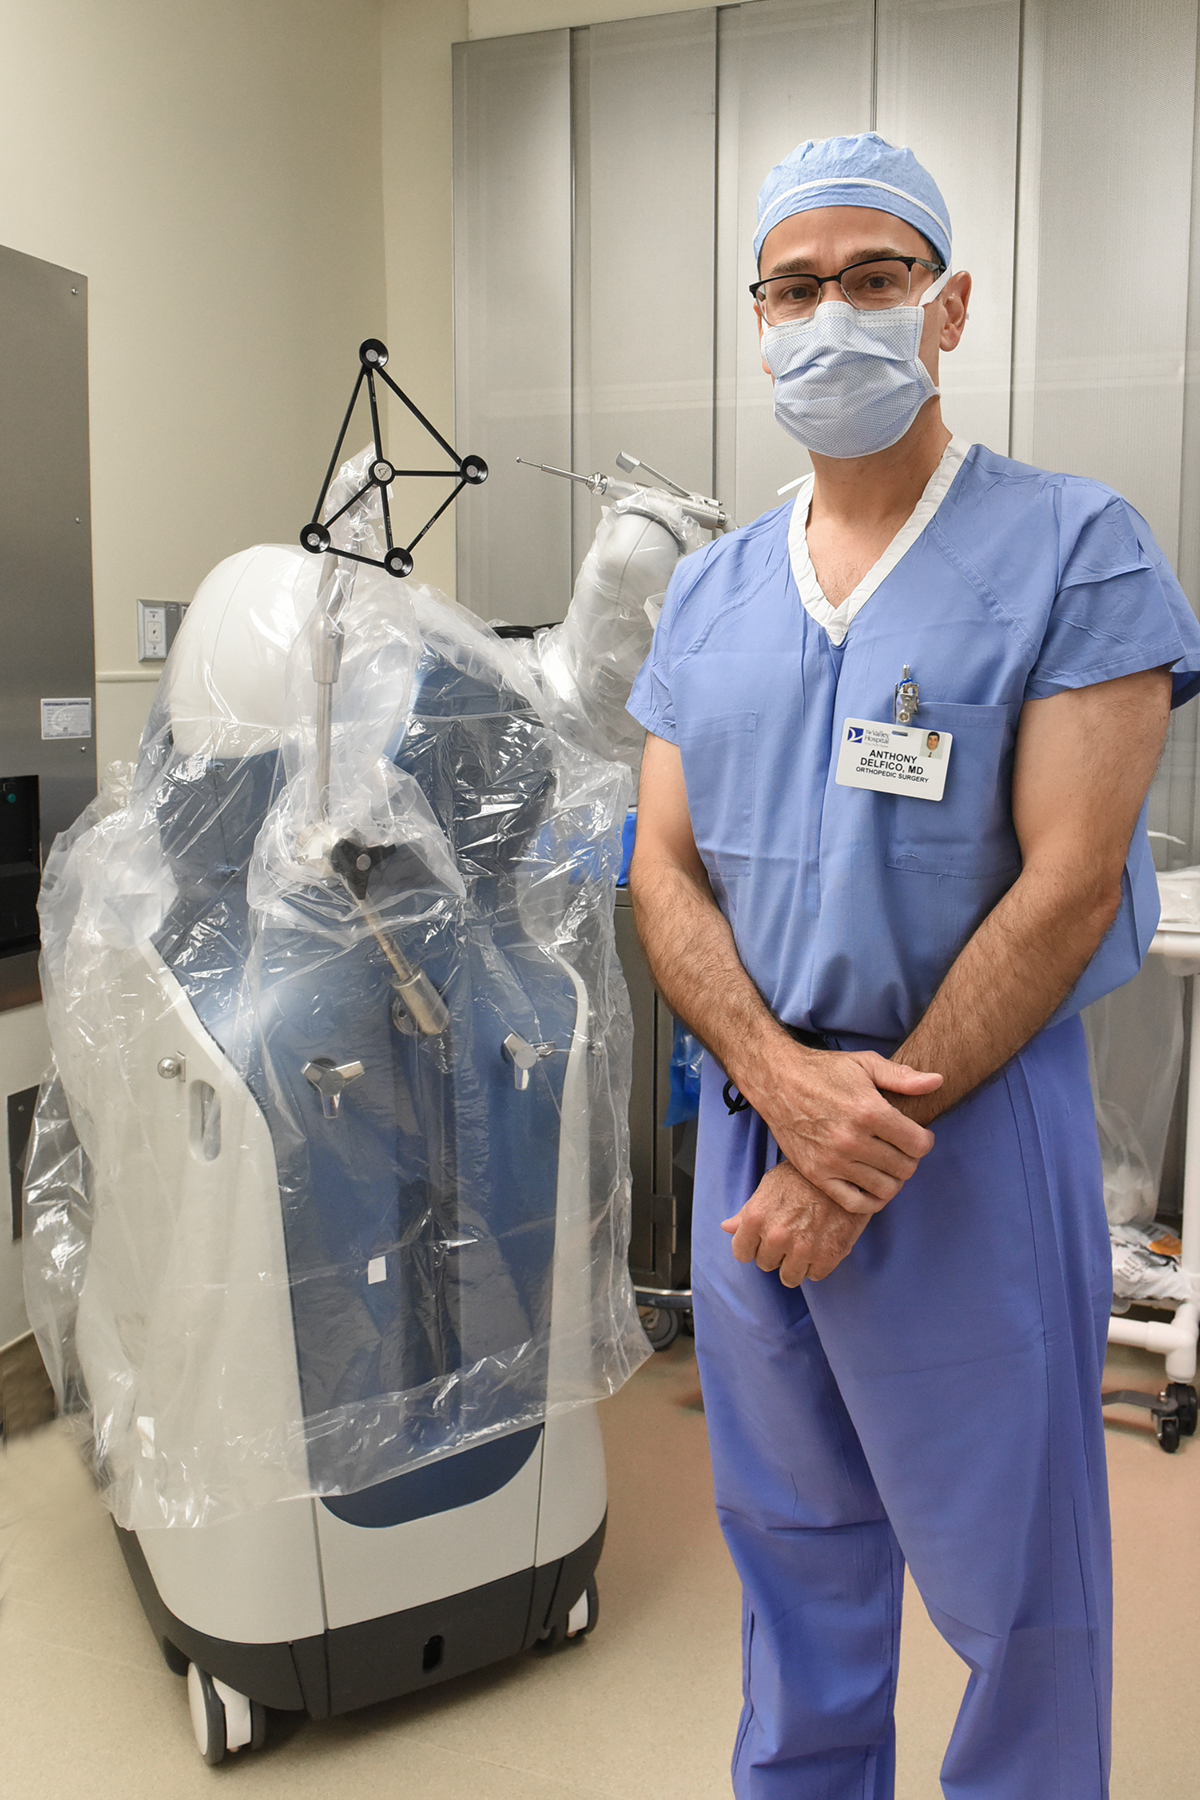 Joint Replacement With A Robotic Assist | NEWS-Line for Radiology